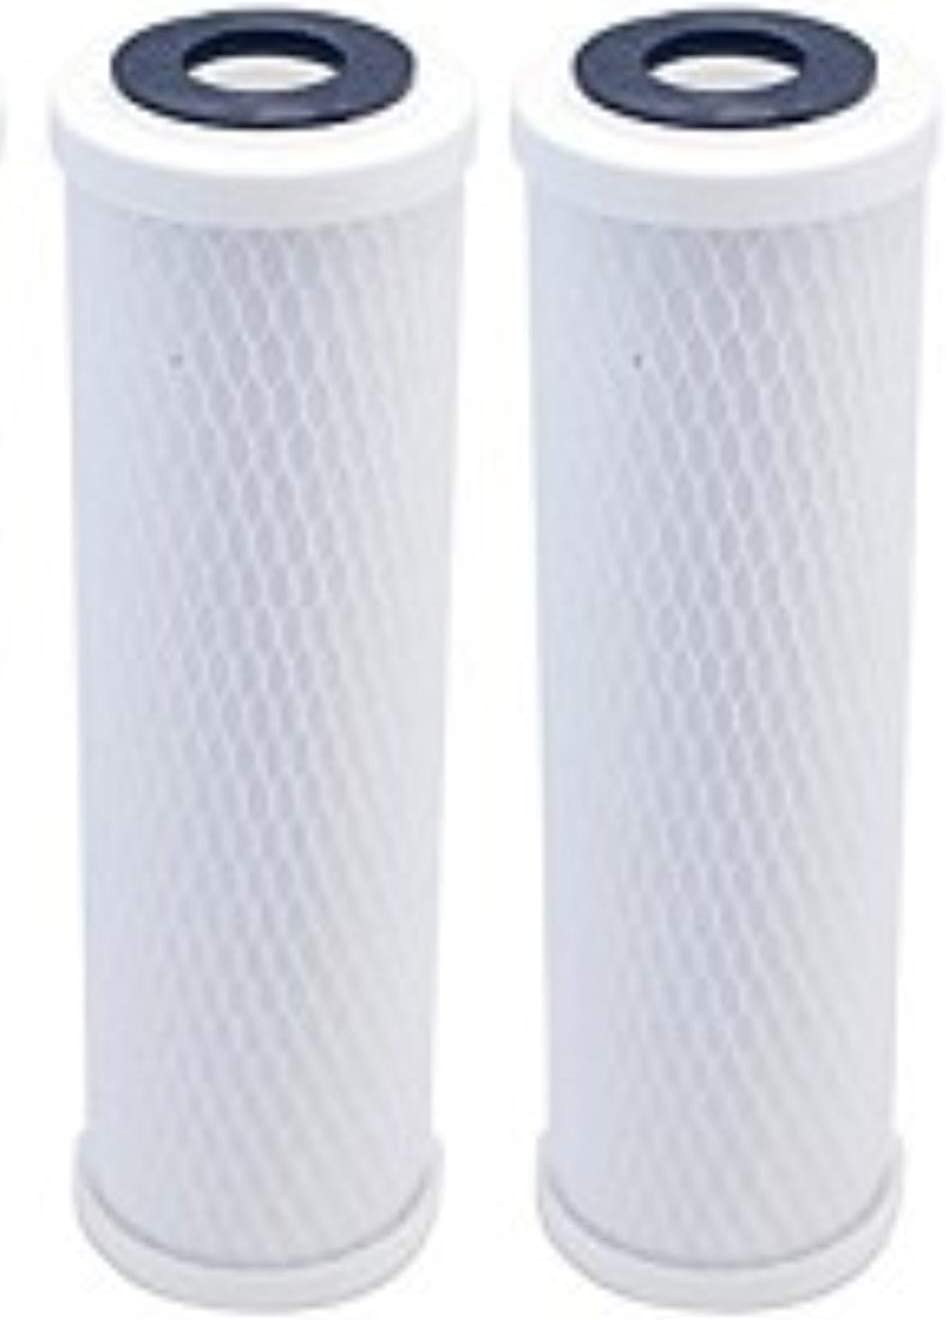 CFS 5 Micron 2 Pack 10 X 2.5 Carbon Block Filter